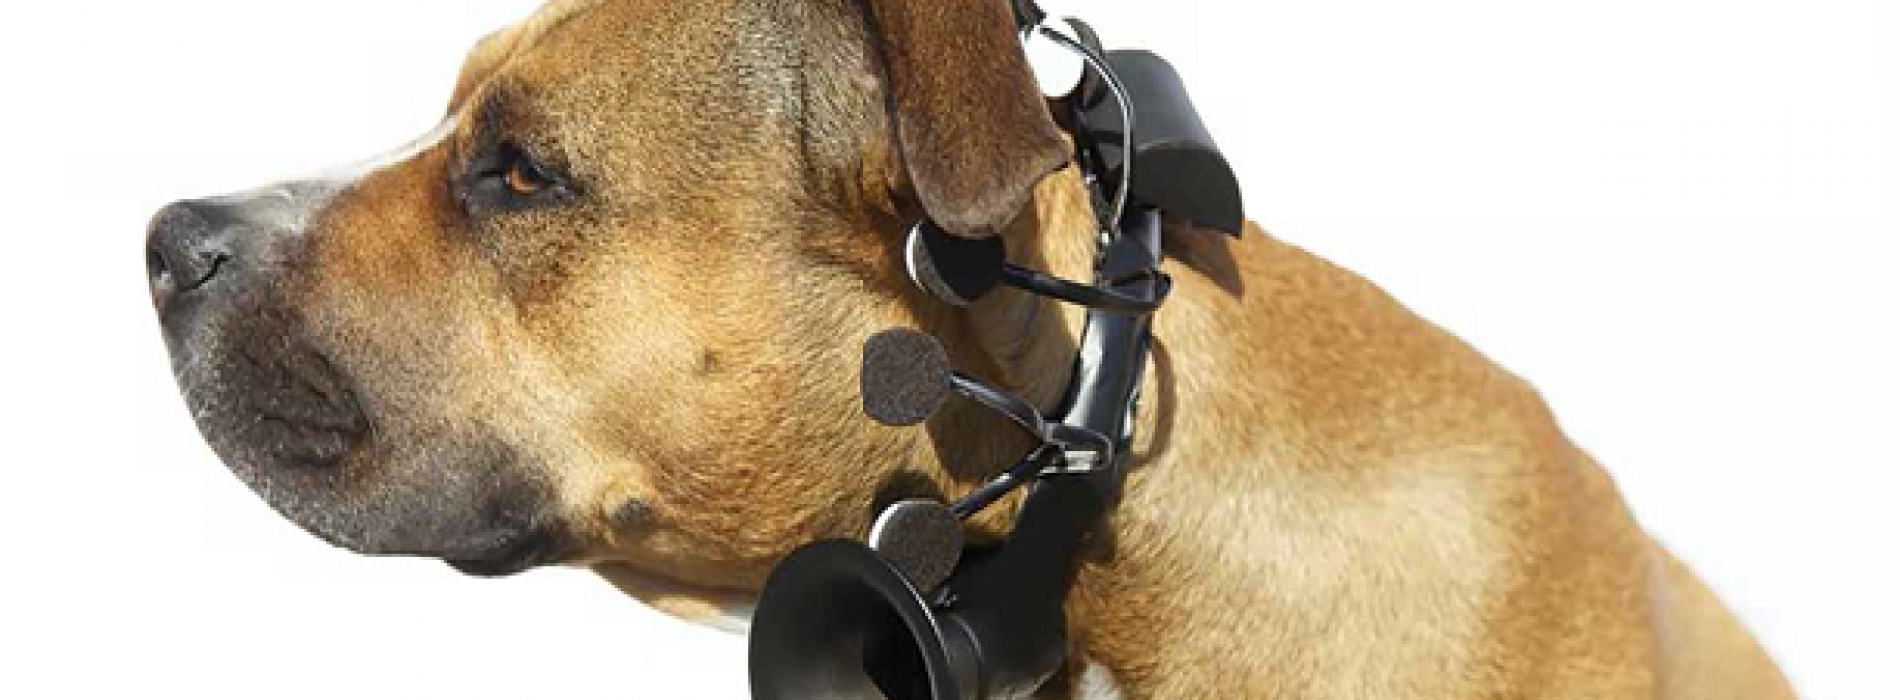 What is Your Dog Trying to Tell You? Within a Few Years, You Will Know.